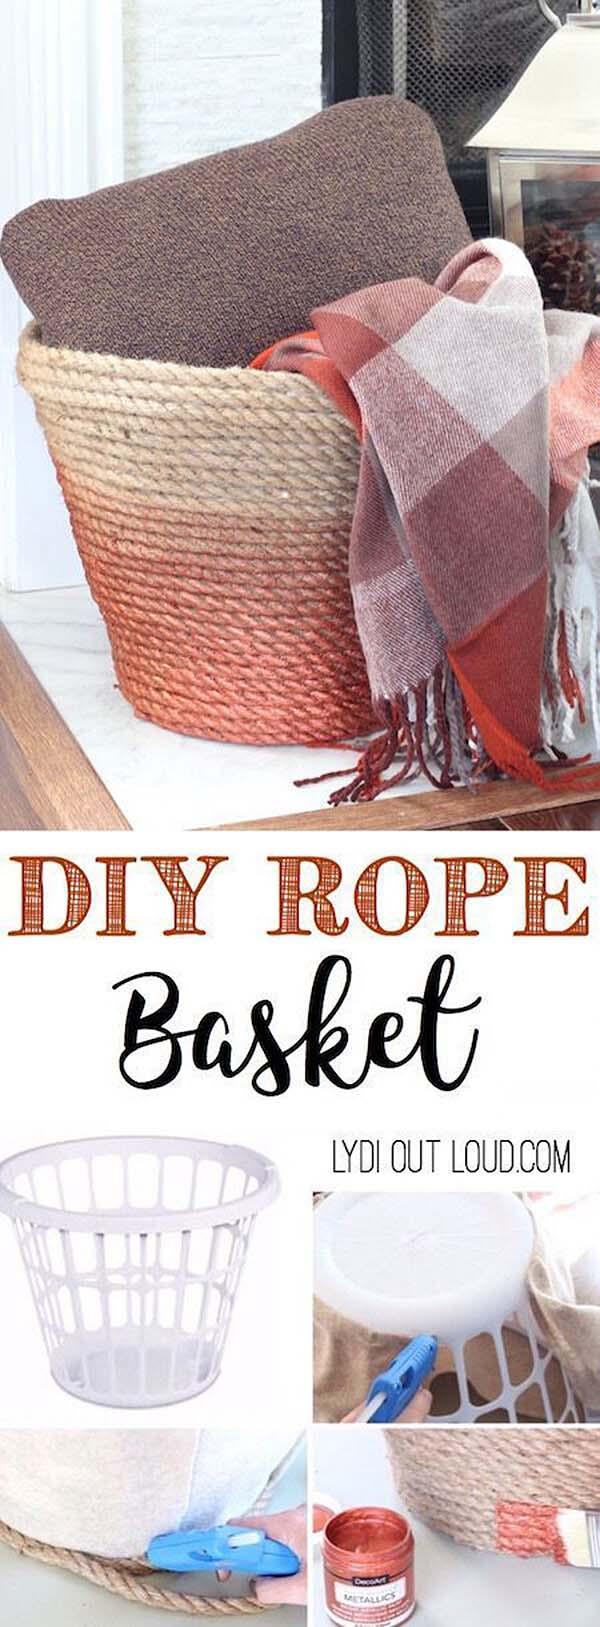 DIY Metallic Rope Throw Basket Tutorial #dollarstore #diy #homedecor #decorhomeideas